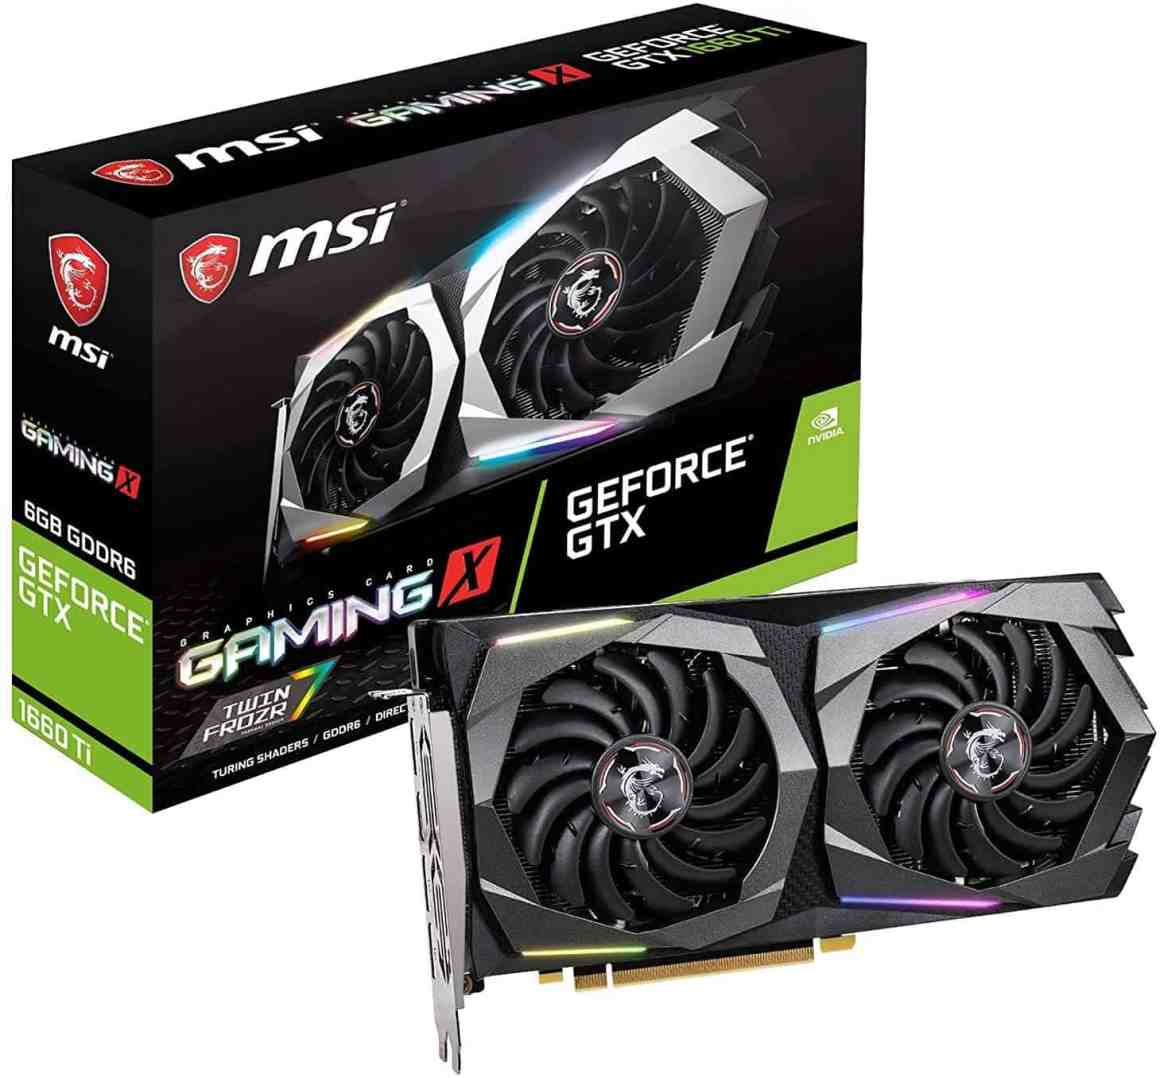 graphics cards for gaming, Image, Gaurav Tiwari